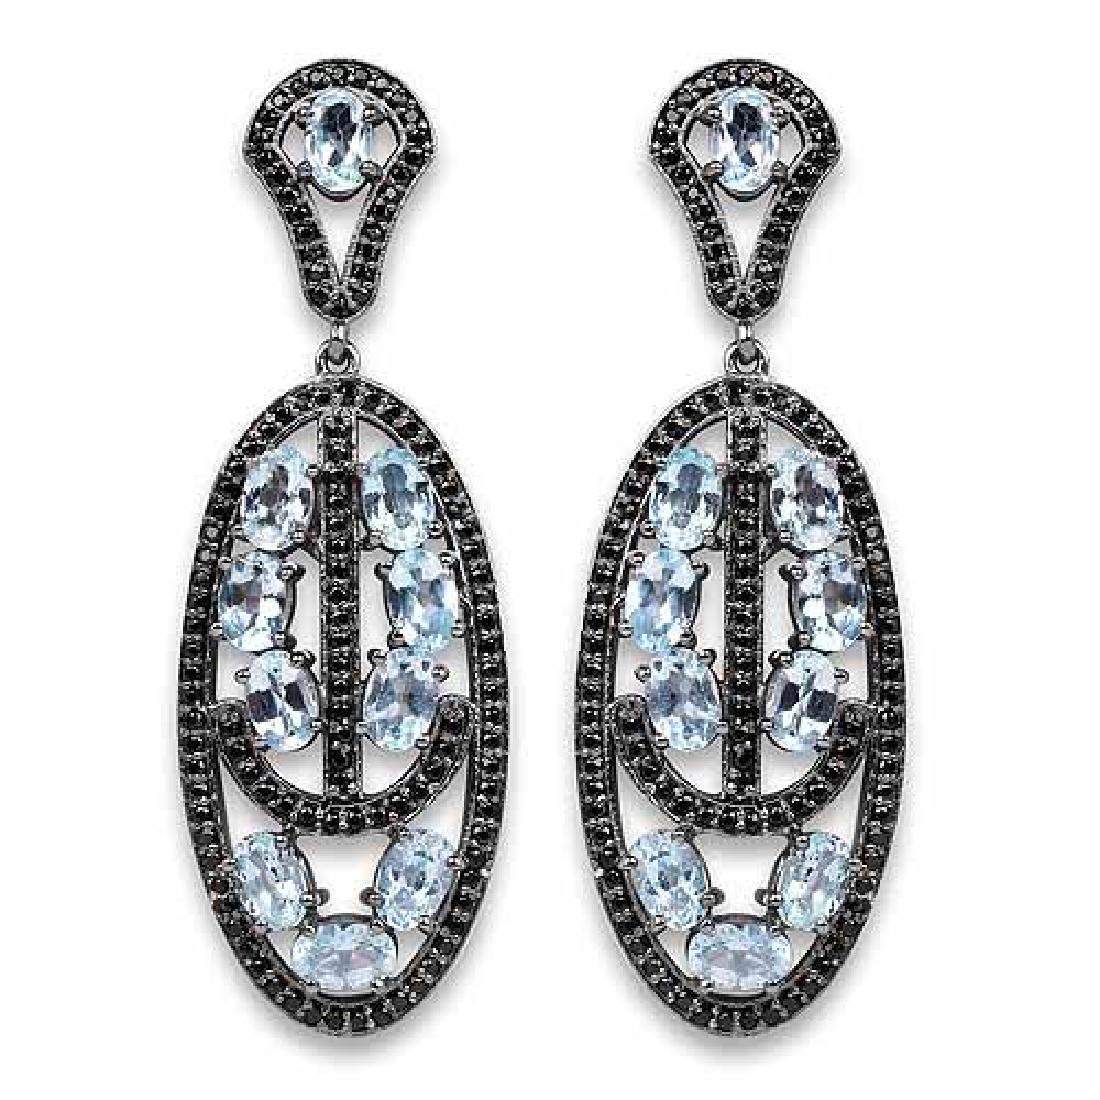 13.80 Carat Genuine Blue Topaz and Black Spinel .925 St